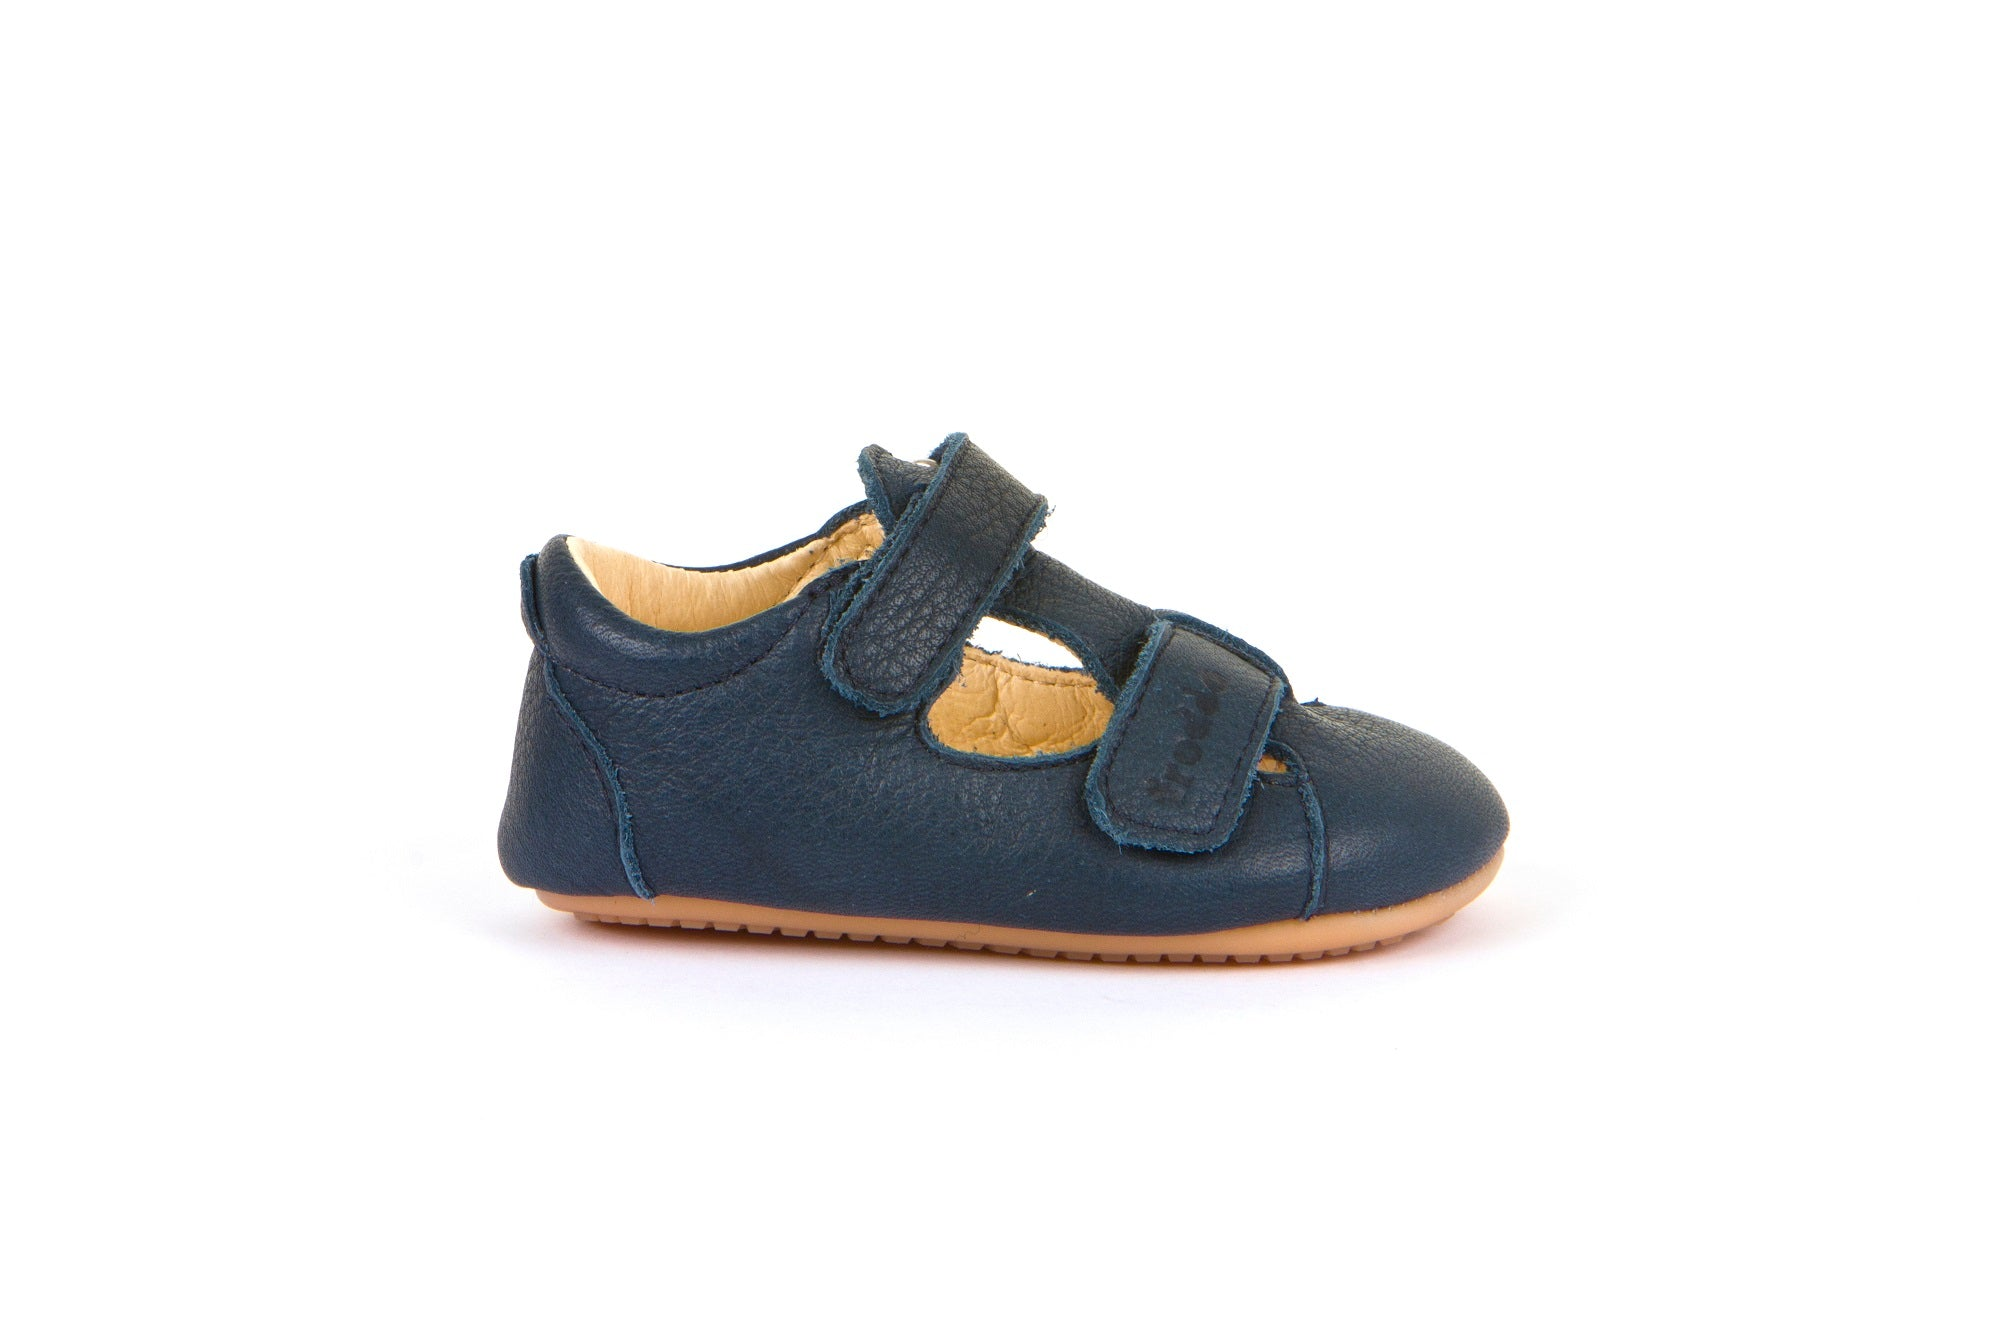 Froddo Leather Sandal Prewalker - Navy